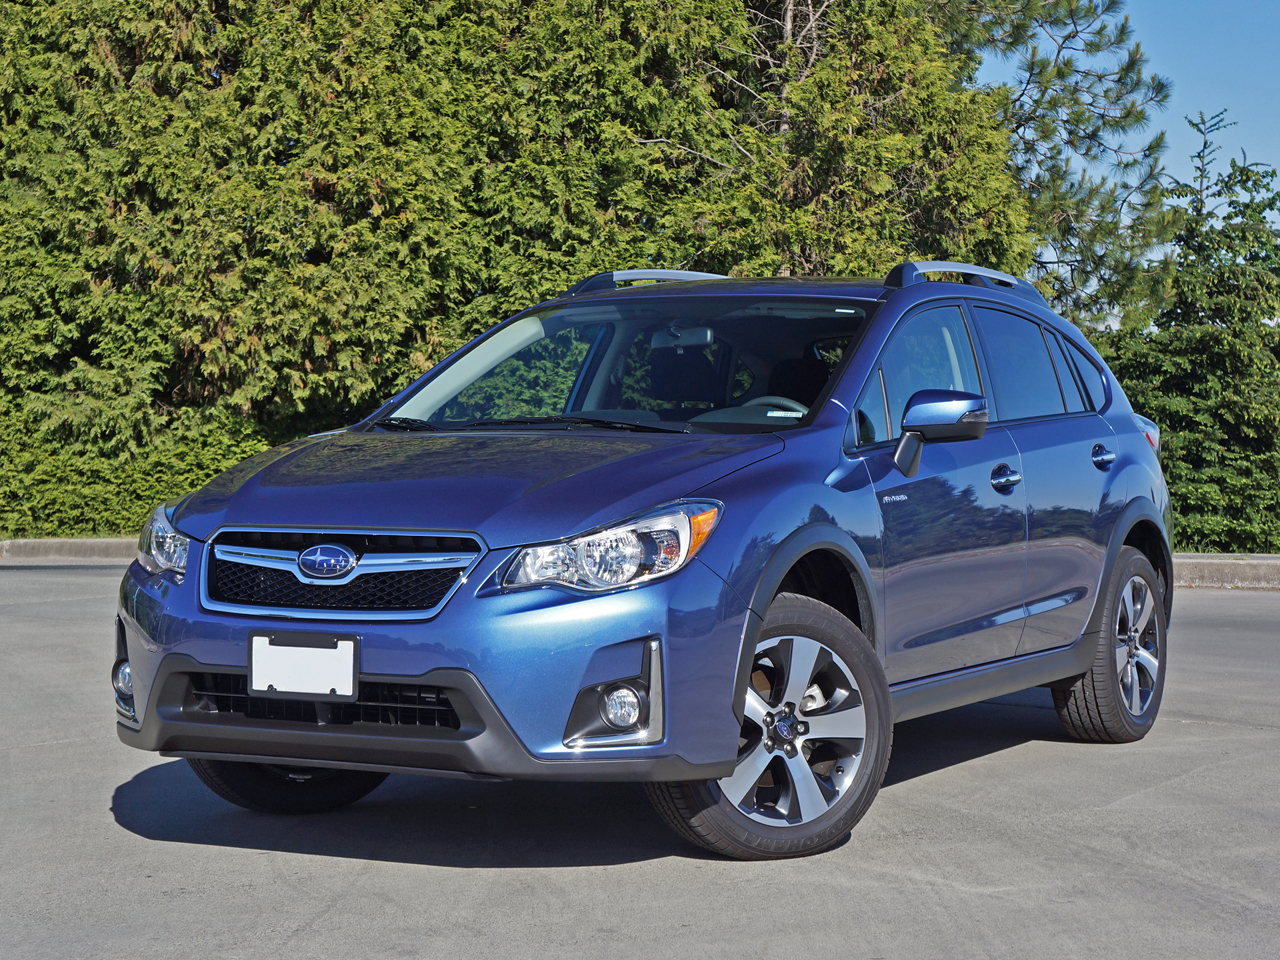 2016 subaru crosstrek hybrid road test review carcostcanada. Black Bedroom Furniture Sets. Home Design Ideas